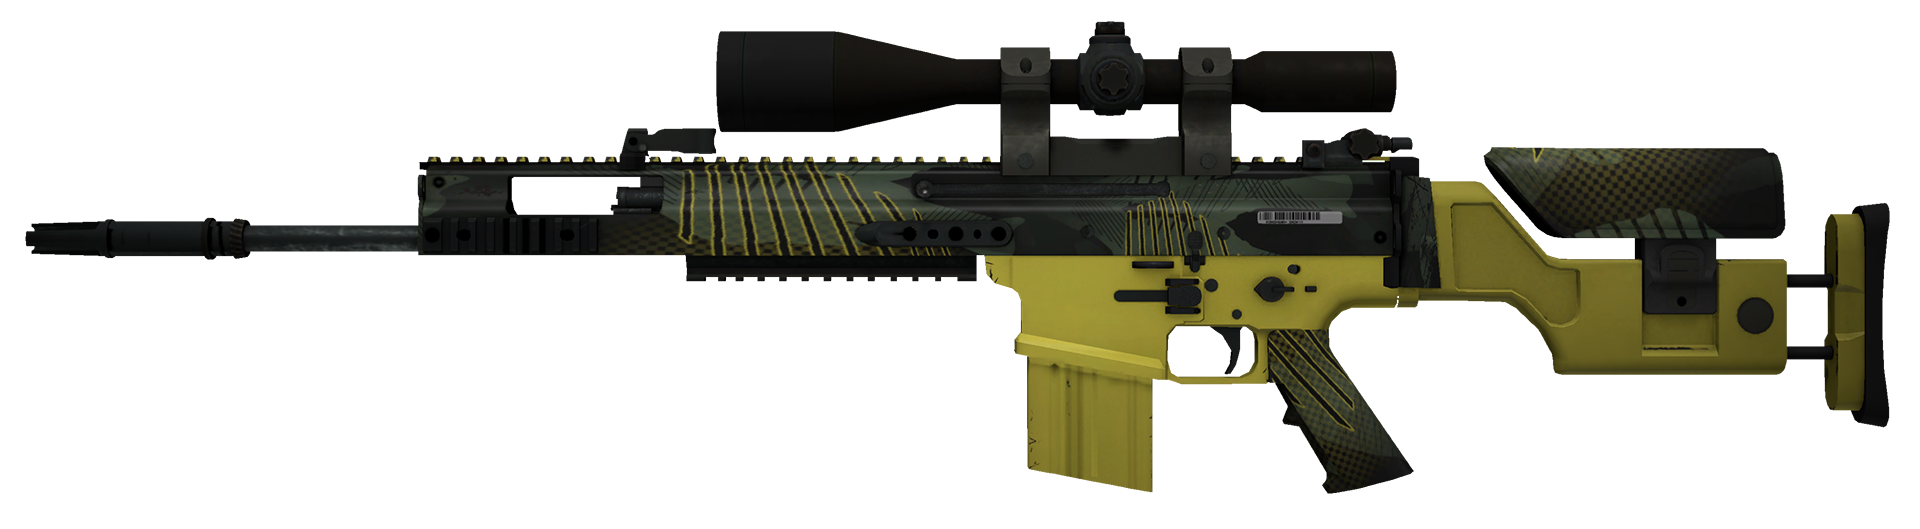 SCAR-20 Jungle Slipstream Large Rendering